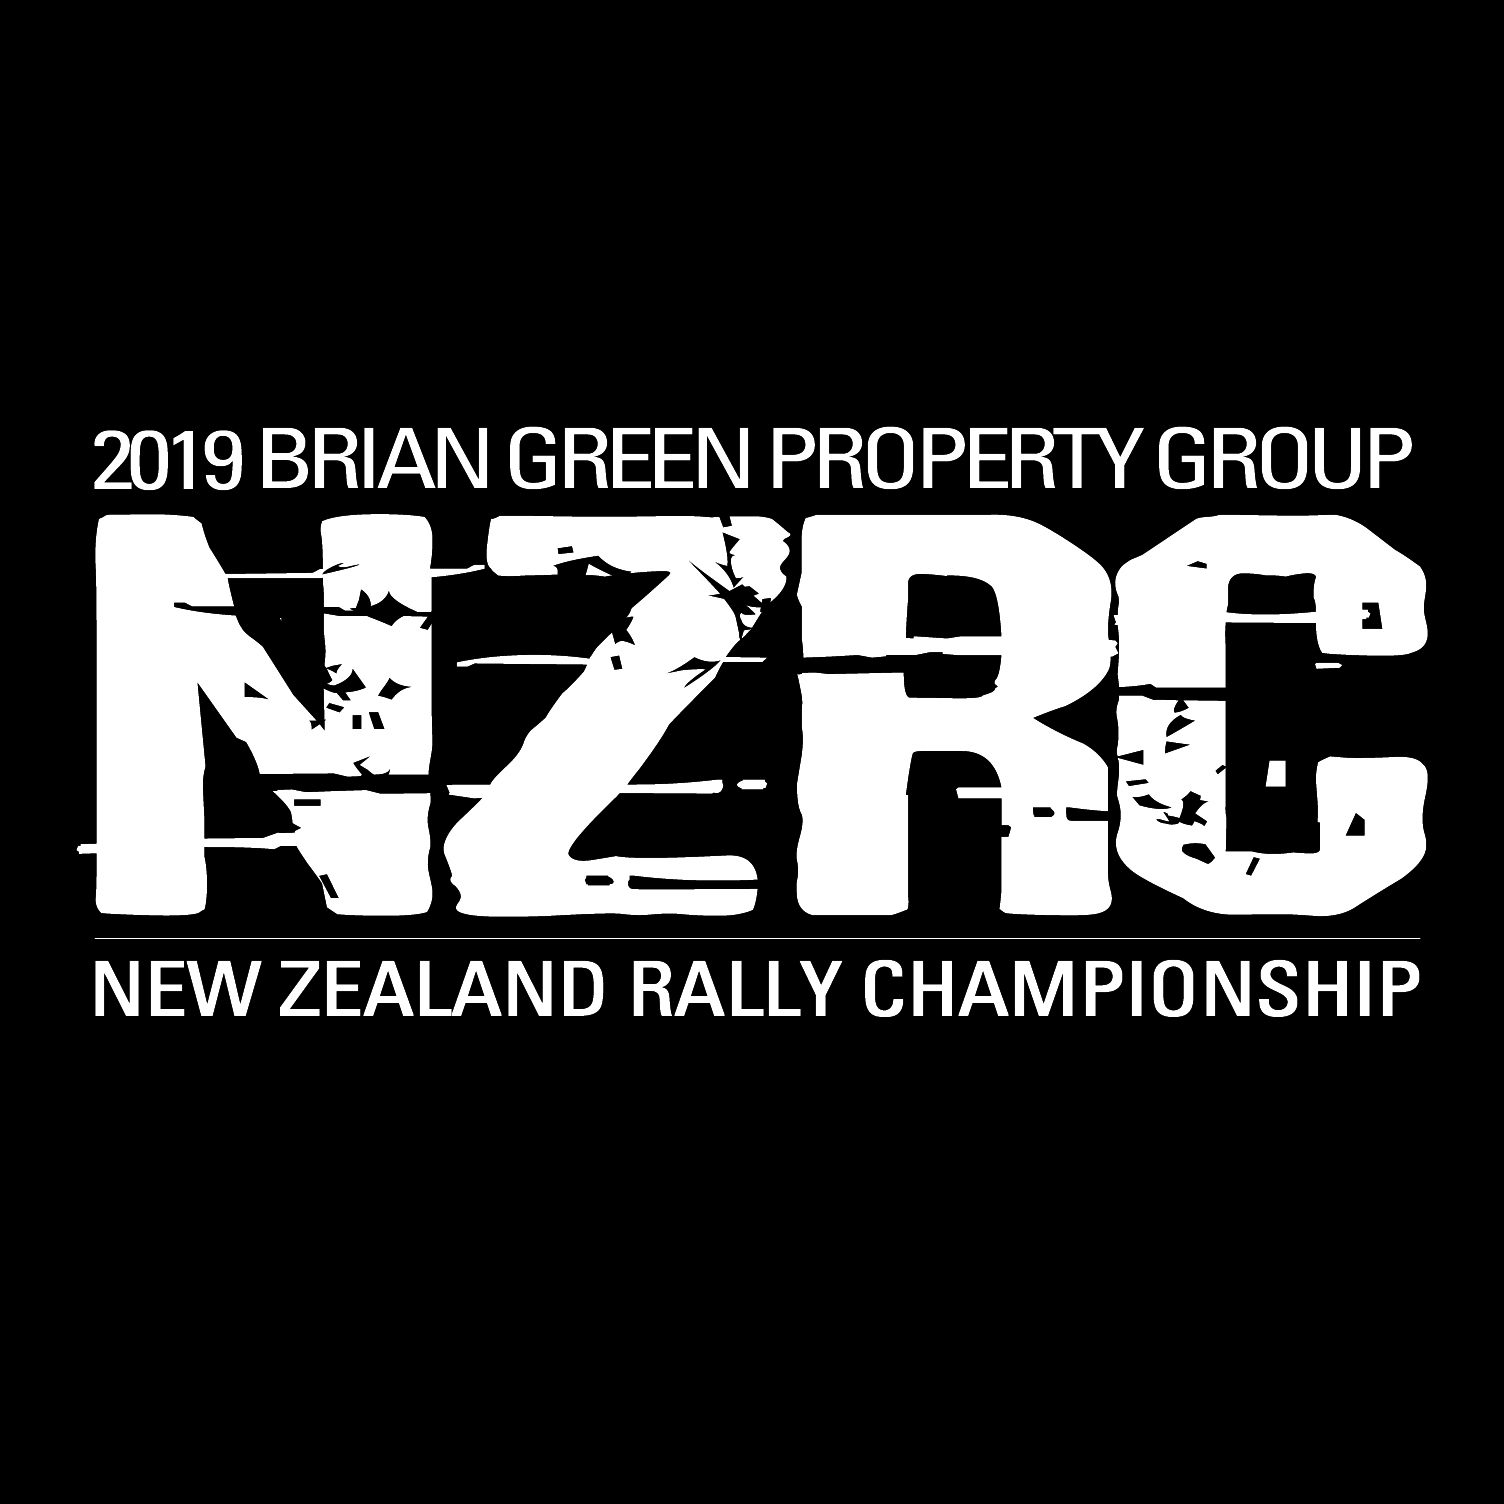 Regulations & Forms | :: Brian Green Property Group New Zealand Rally Championship ::